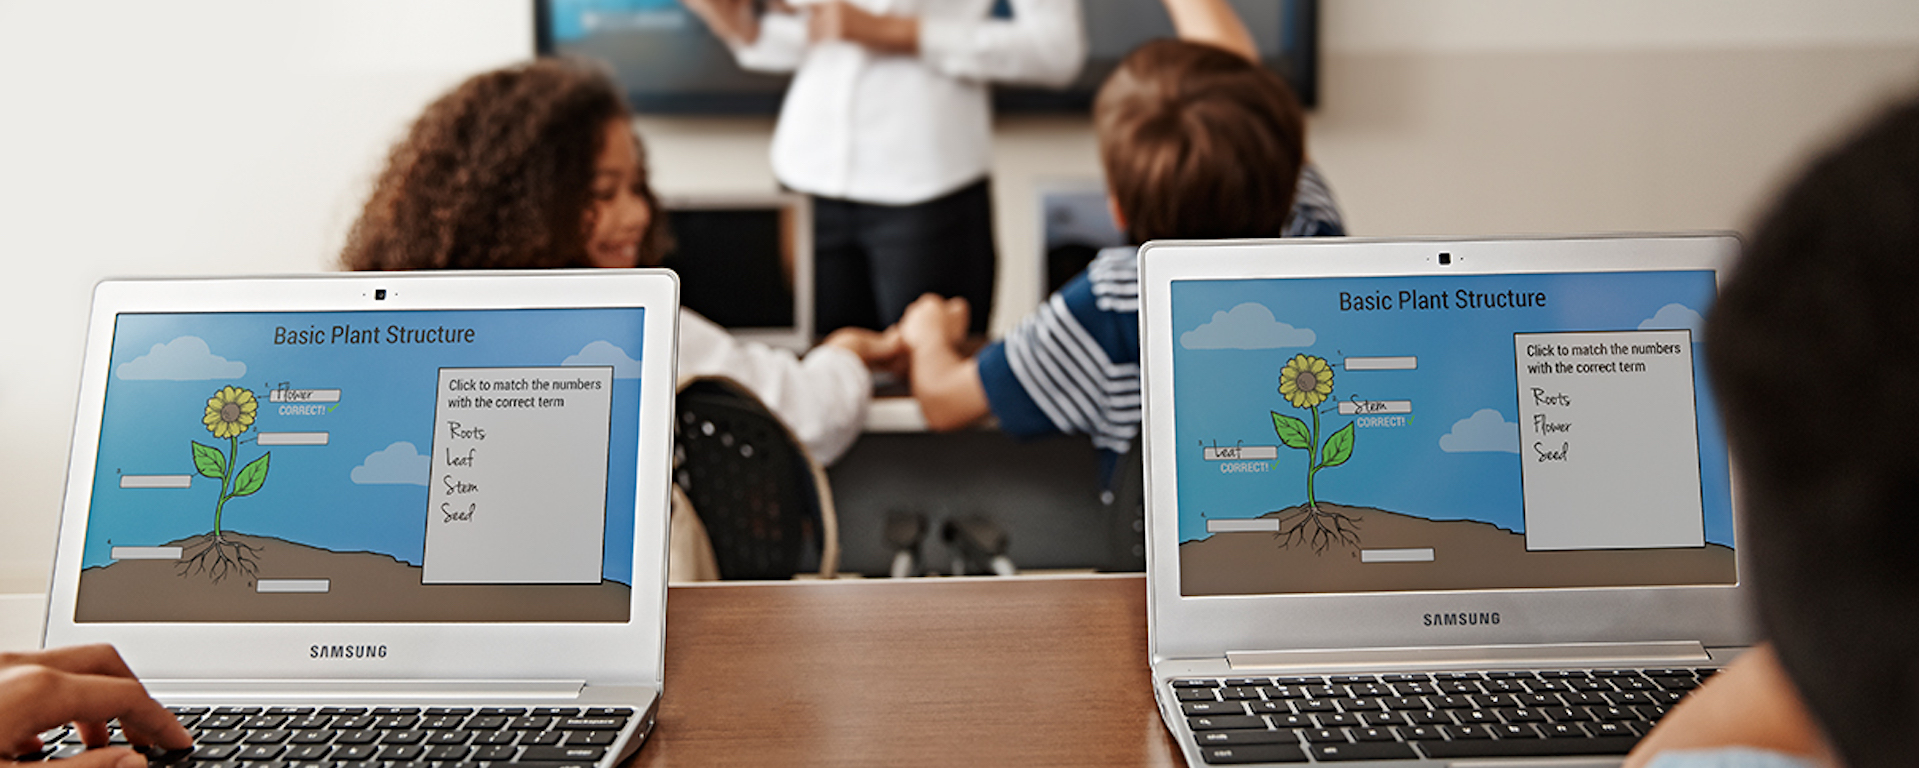 the real digital divide essay Chat - real time, text-based communication in a virtual environment 4 digital divide - the gap between those with regular, effective access to digital.